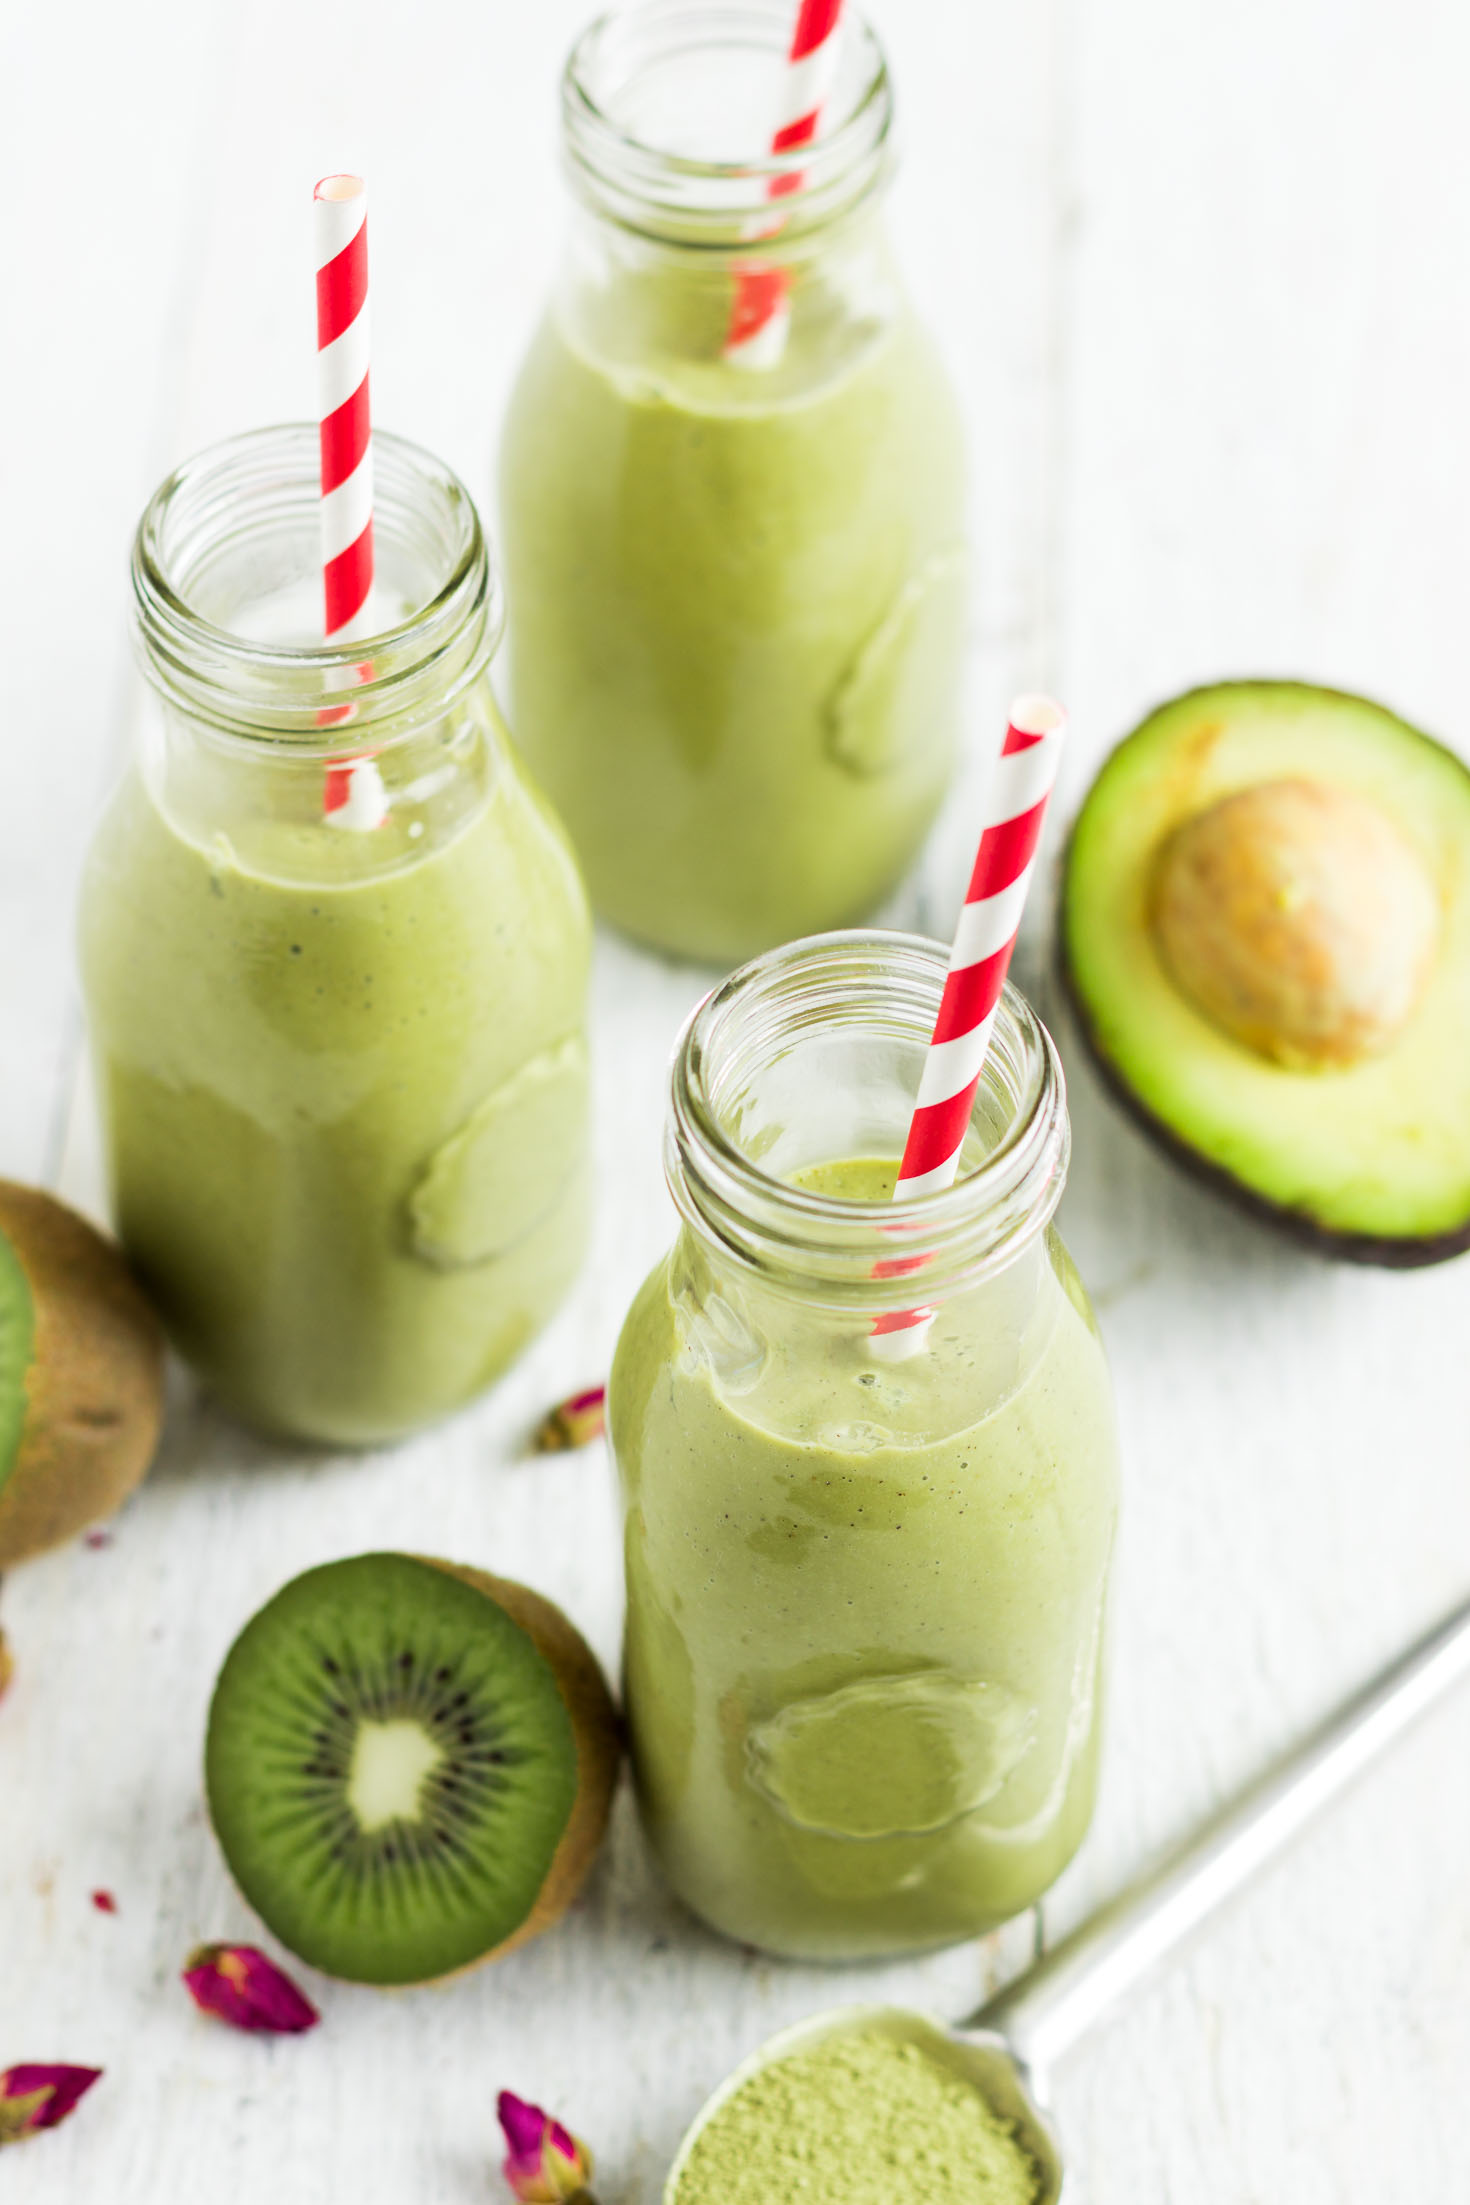 Green Kiwi Matcha Protein Smoothie-top view-3 glasses with red straws